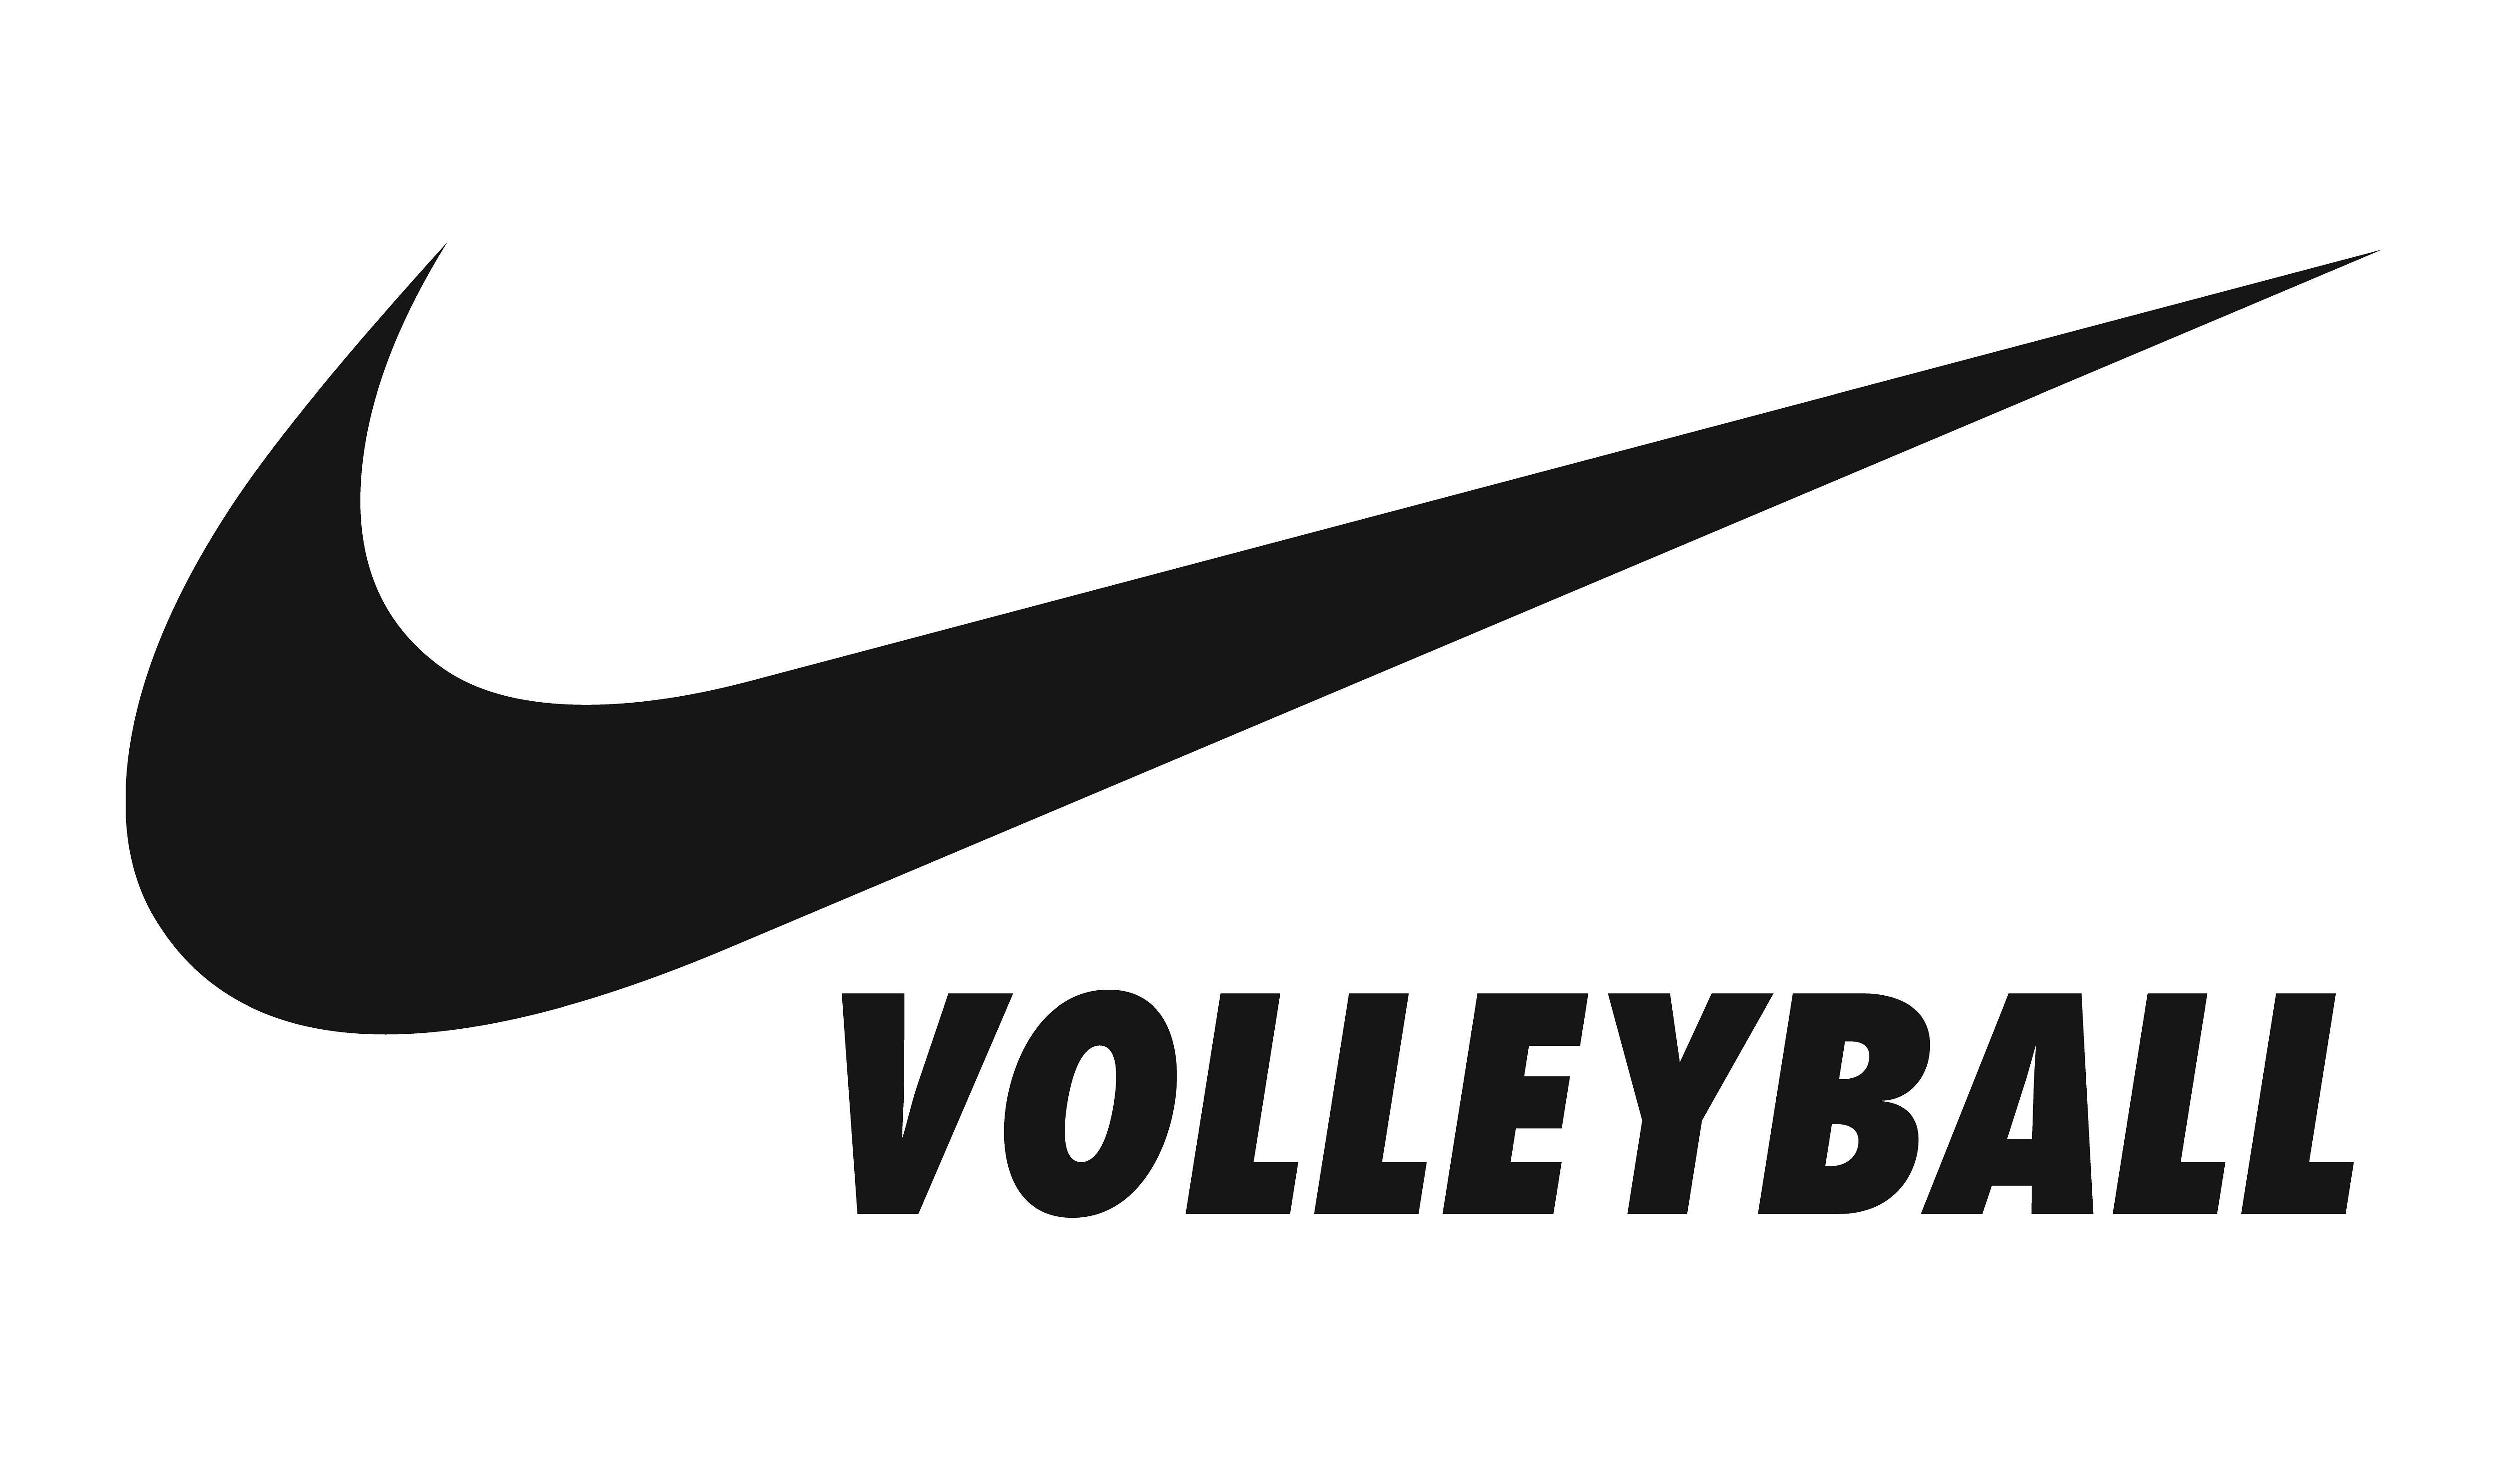 50 Nike Volleyball Wallpapers Download At Wallpaperbro Volleyball Wallpaper Nike Volleyball Volleyball